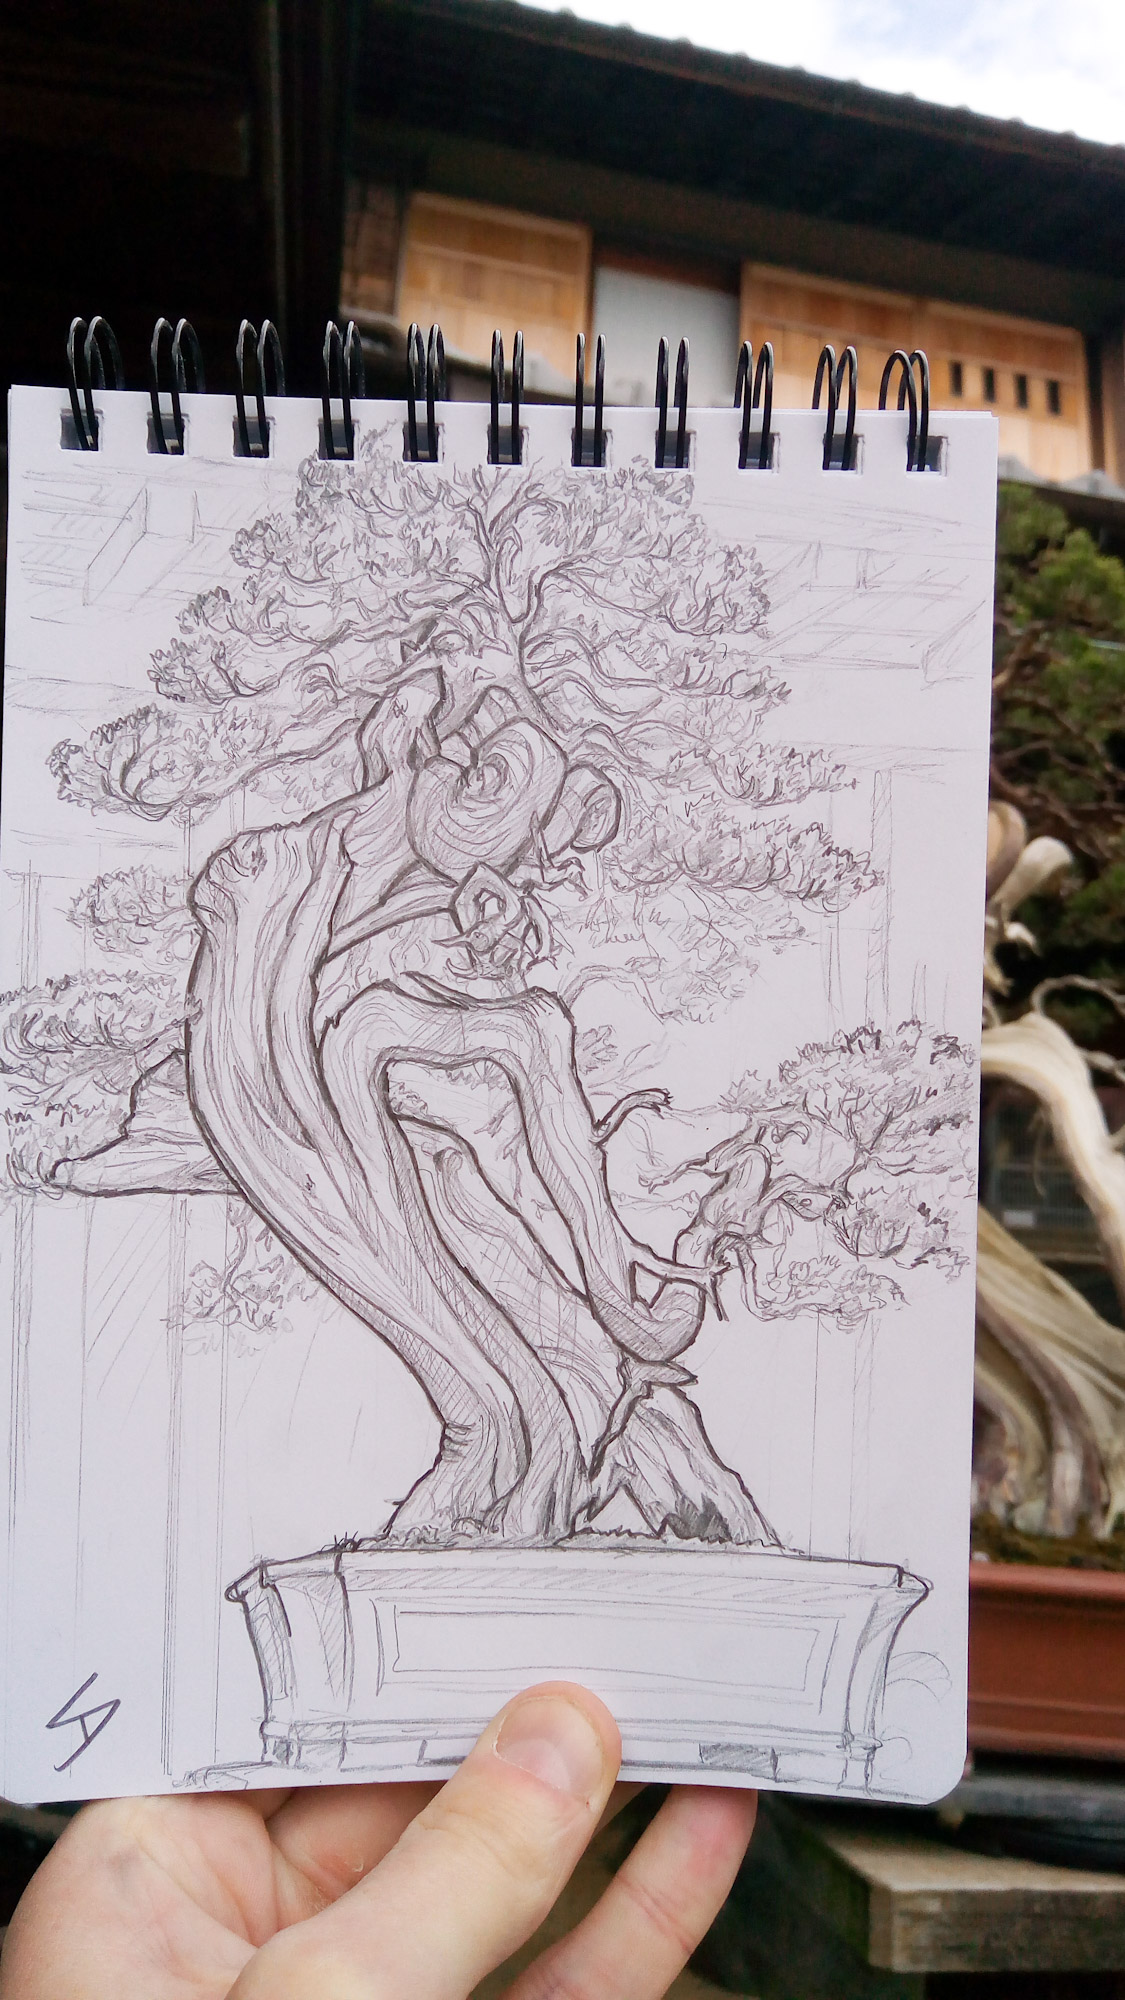 Urban photo art - Edogawa City, Tokyo, Japan. 'Shunka-en Bonsai Museum.' I was informed the Sargent Juniper tree I sketched was over 600 years old. Included in the entrance fee, is a cup of traditional Japanese tea - perfect accompaniment to a sunny sketch. sketchbookexplorer.com @davidasutton @sketchbookexplorer Facebook.com/davidanthonysutton #japan #tokyo #edogawa #shunkaenbonsaimuseum #travel #travelblog #art #sketching #cheeryblossom #cherryblossomseason #cherryblossomjapan